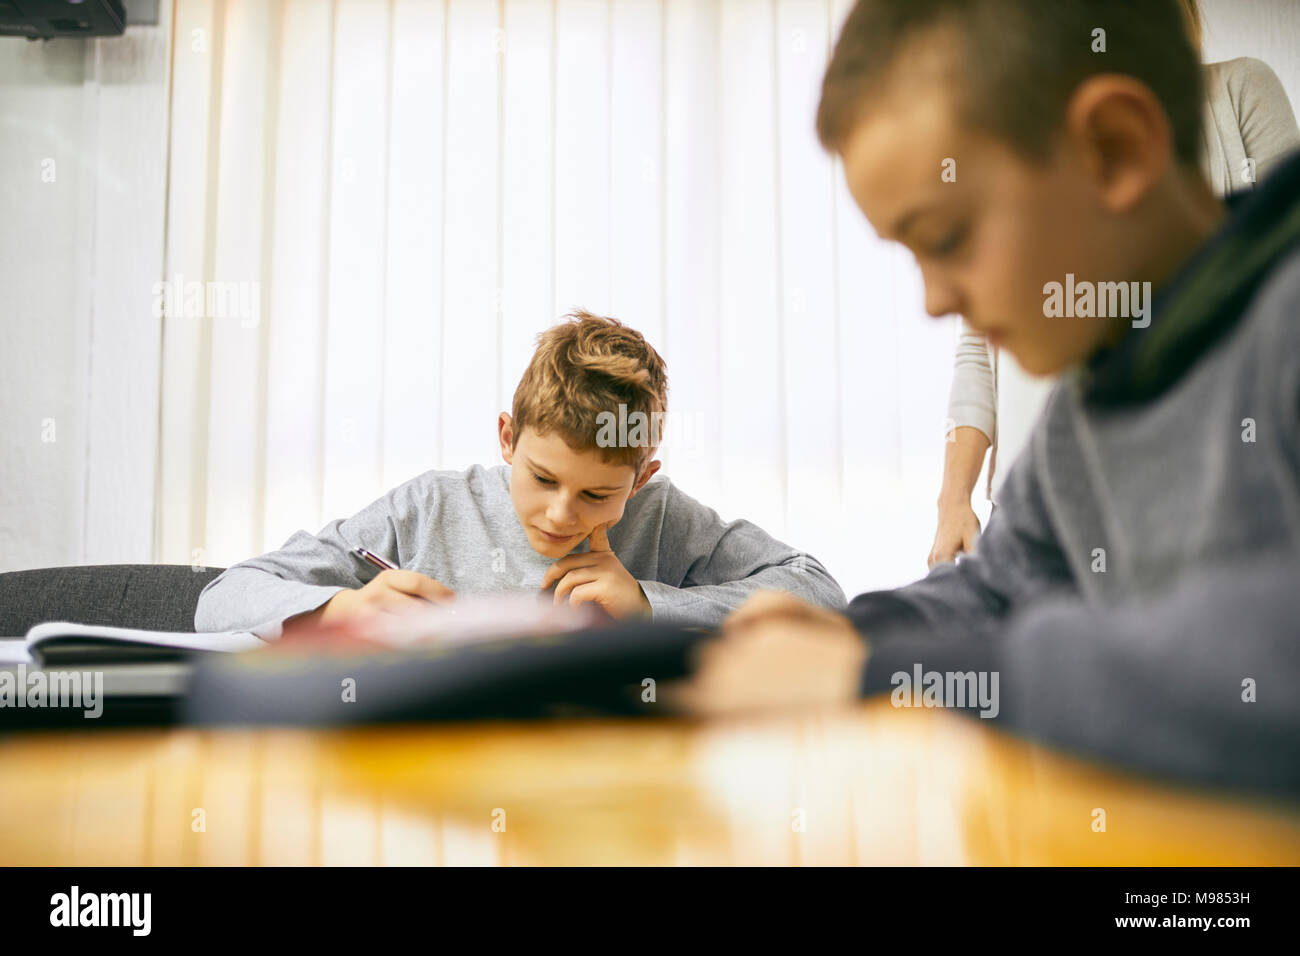 Students learning in class - Stock Image